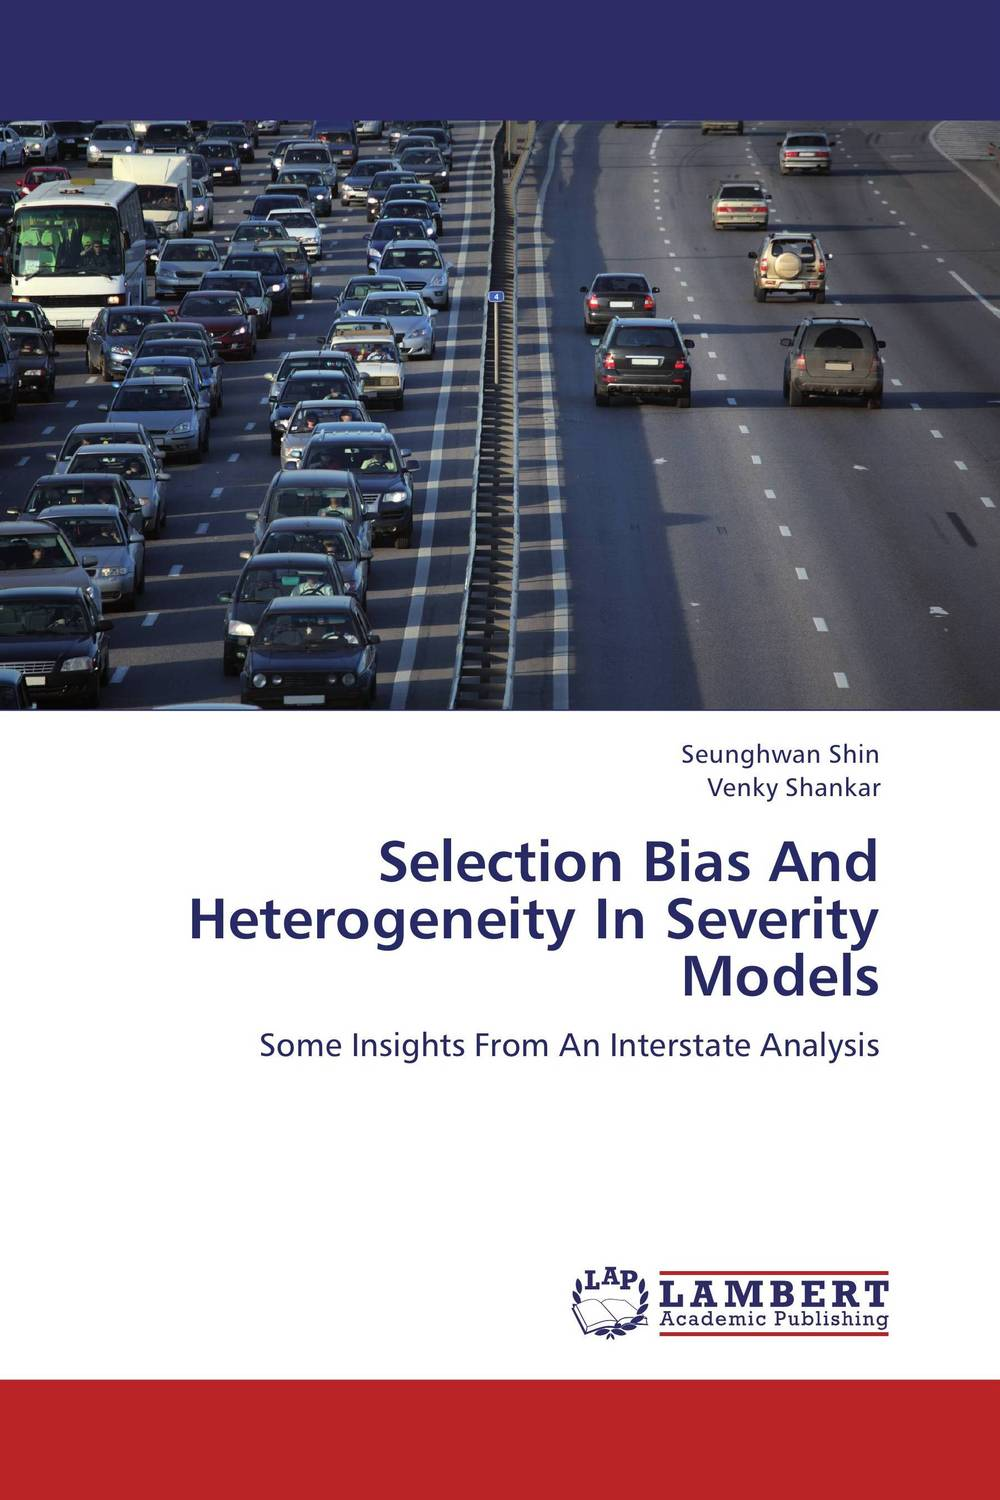 Selection Bias And Heterogeneity In Severity Models seunghwan shin and venky shankar selection bias and heterogeneity in severity models